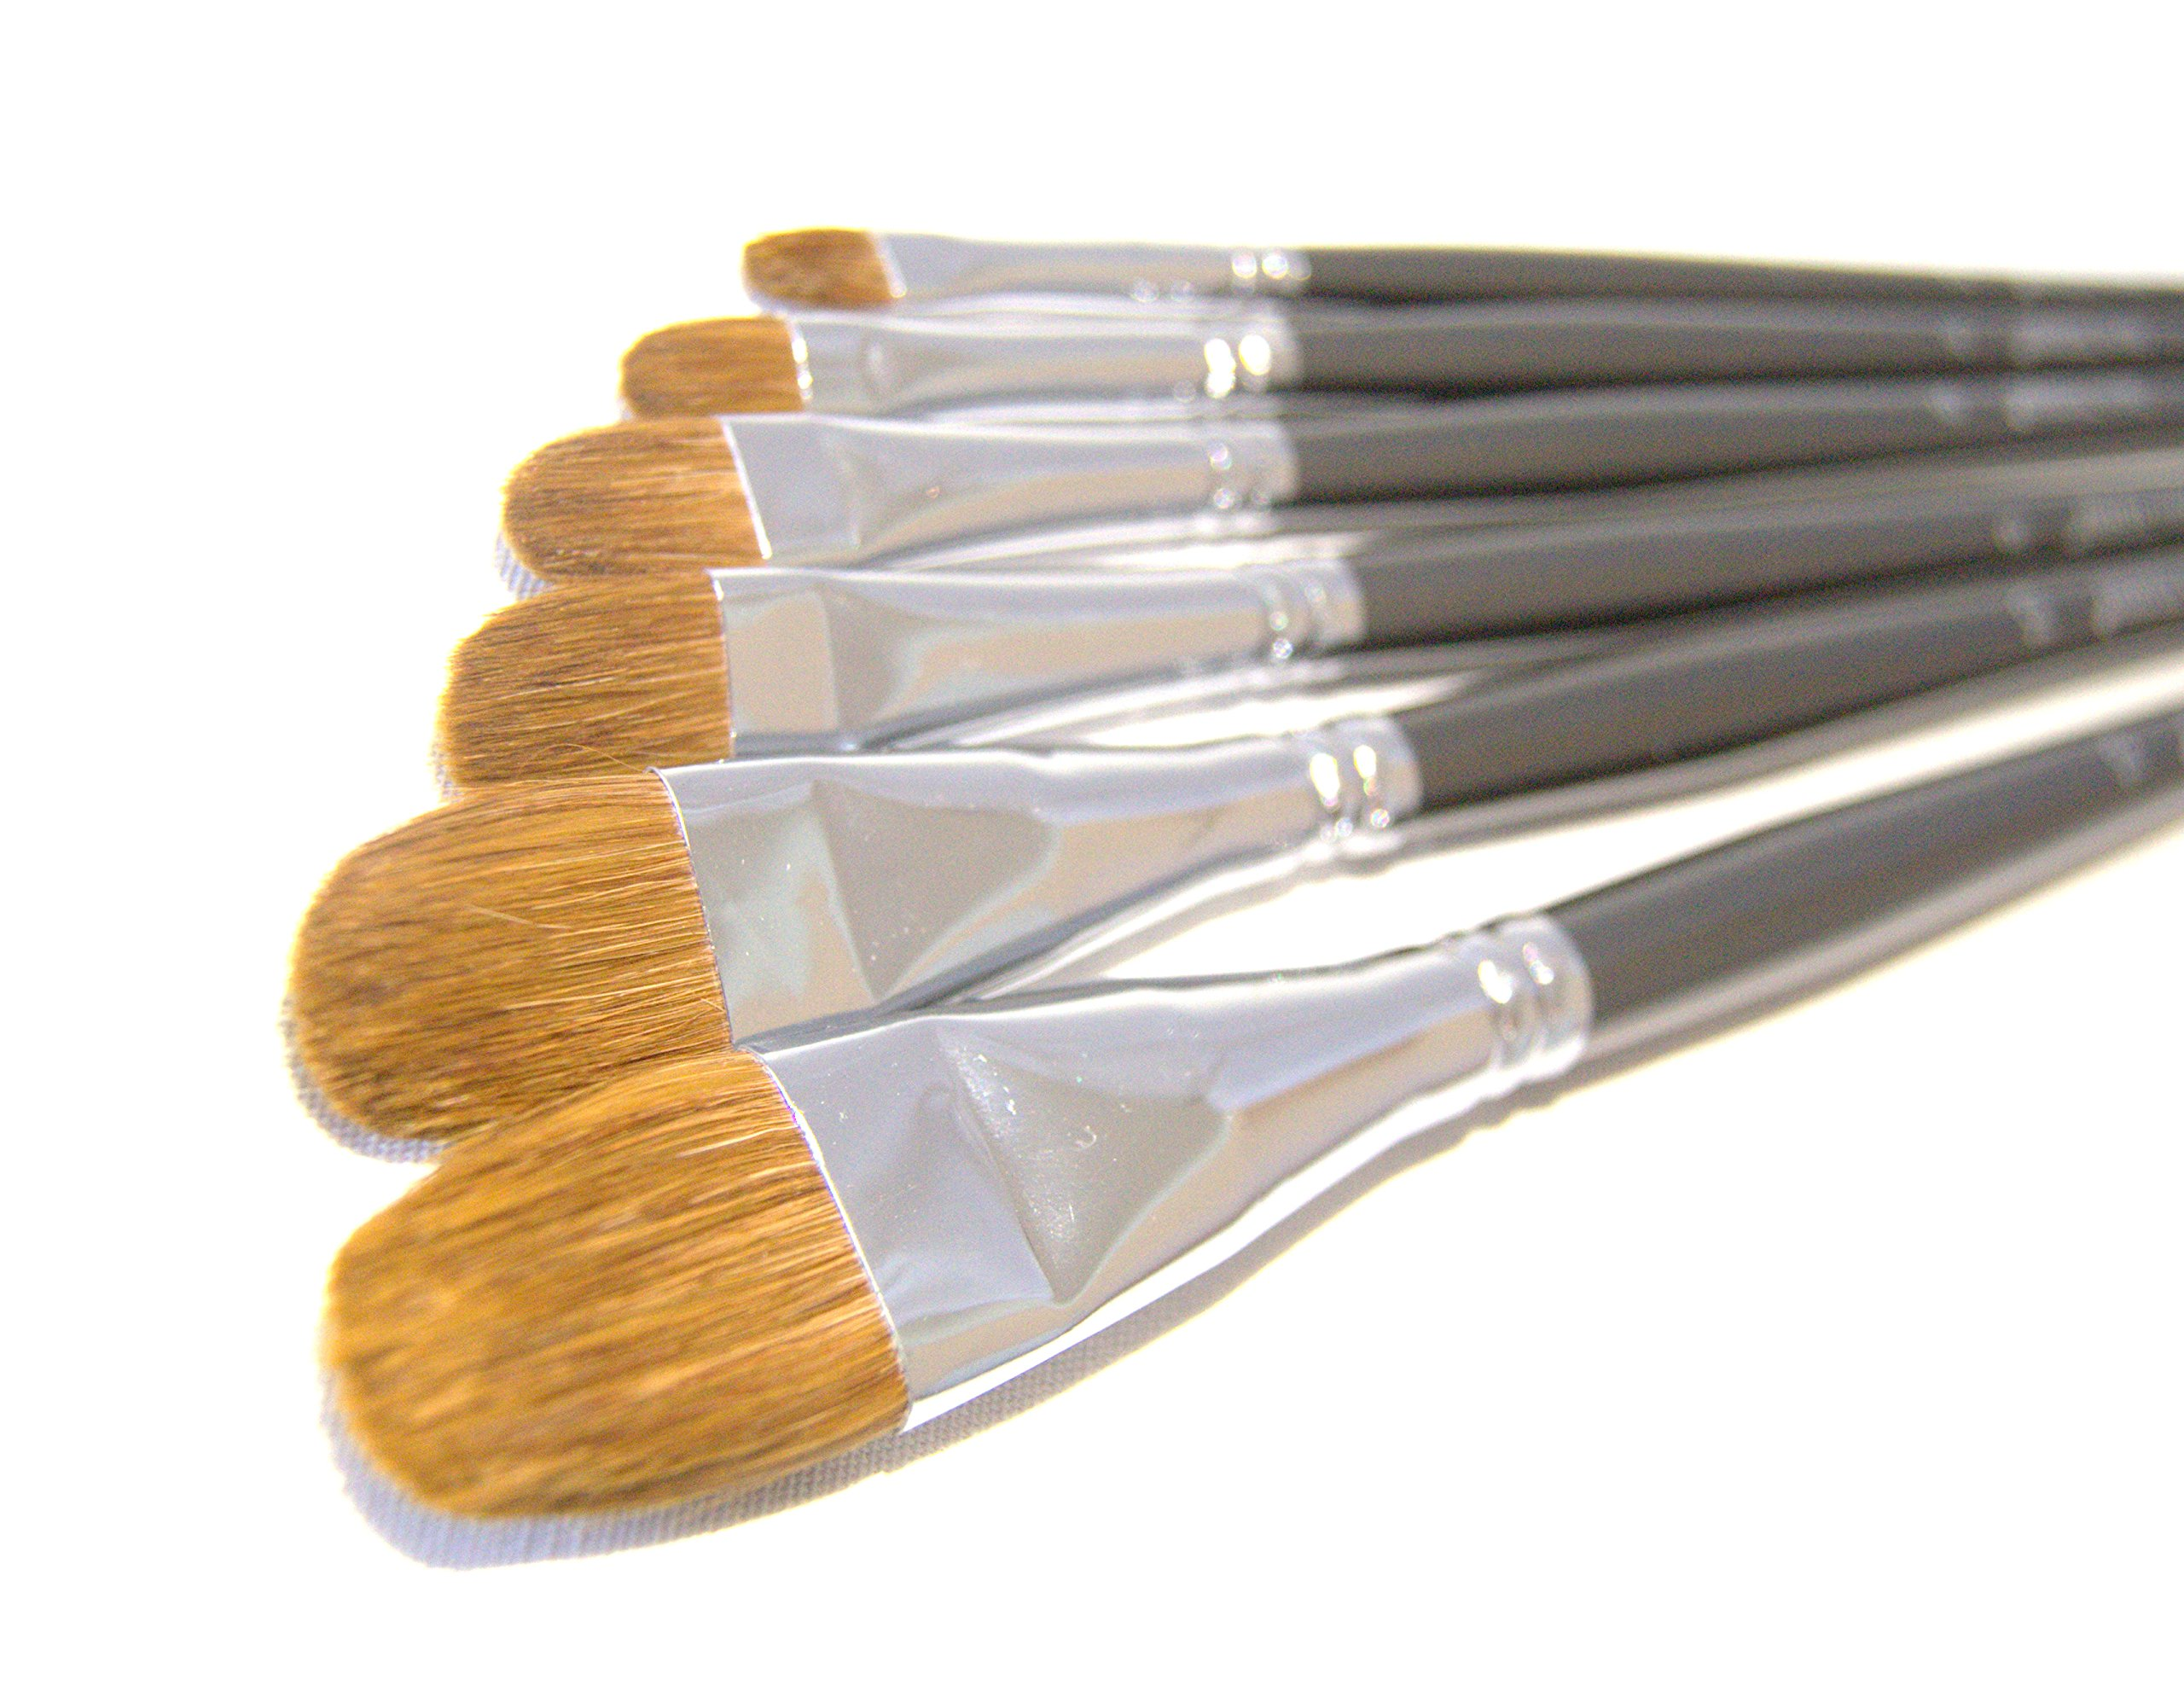 Red Sable Filbert Paint Brushes - Set of 6 Acrylic, Watercolor, Mixed Media or Oil Paint Brushes. Long Handle Professional Art Supplies for Canvas Painting by Creative Colors